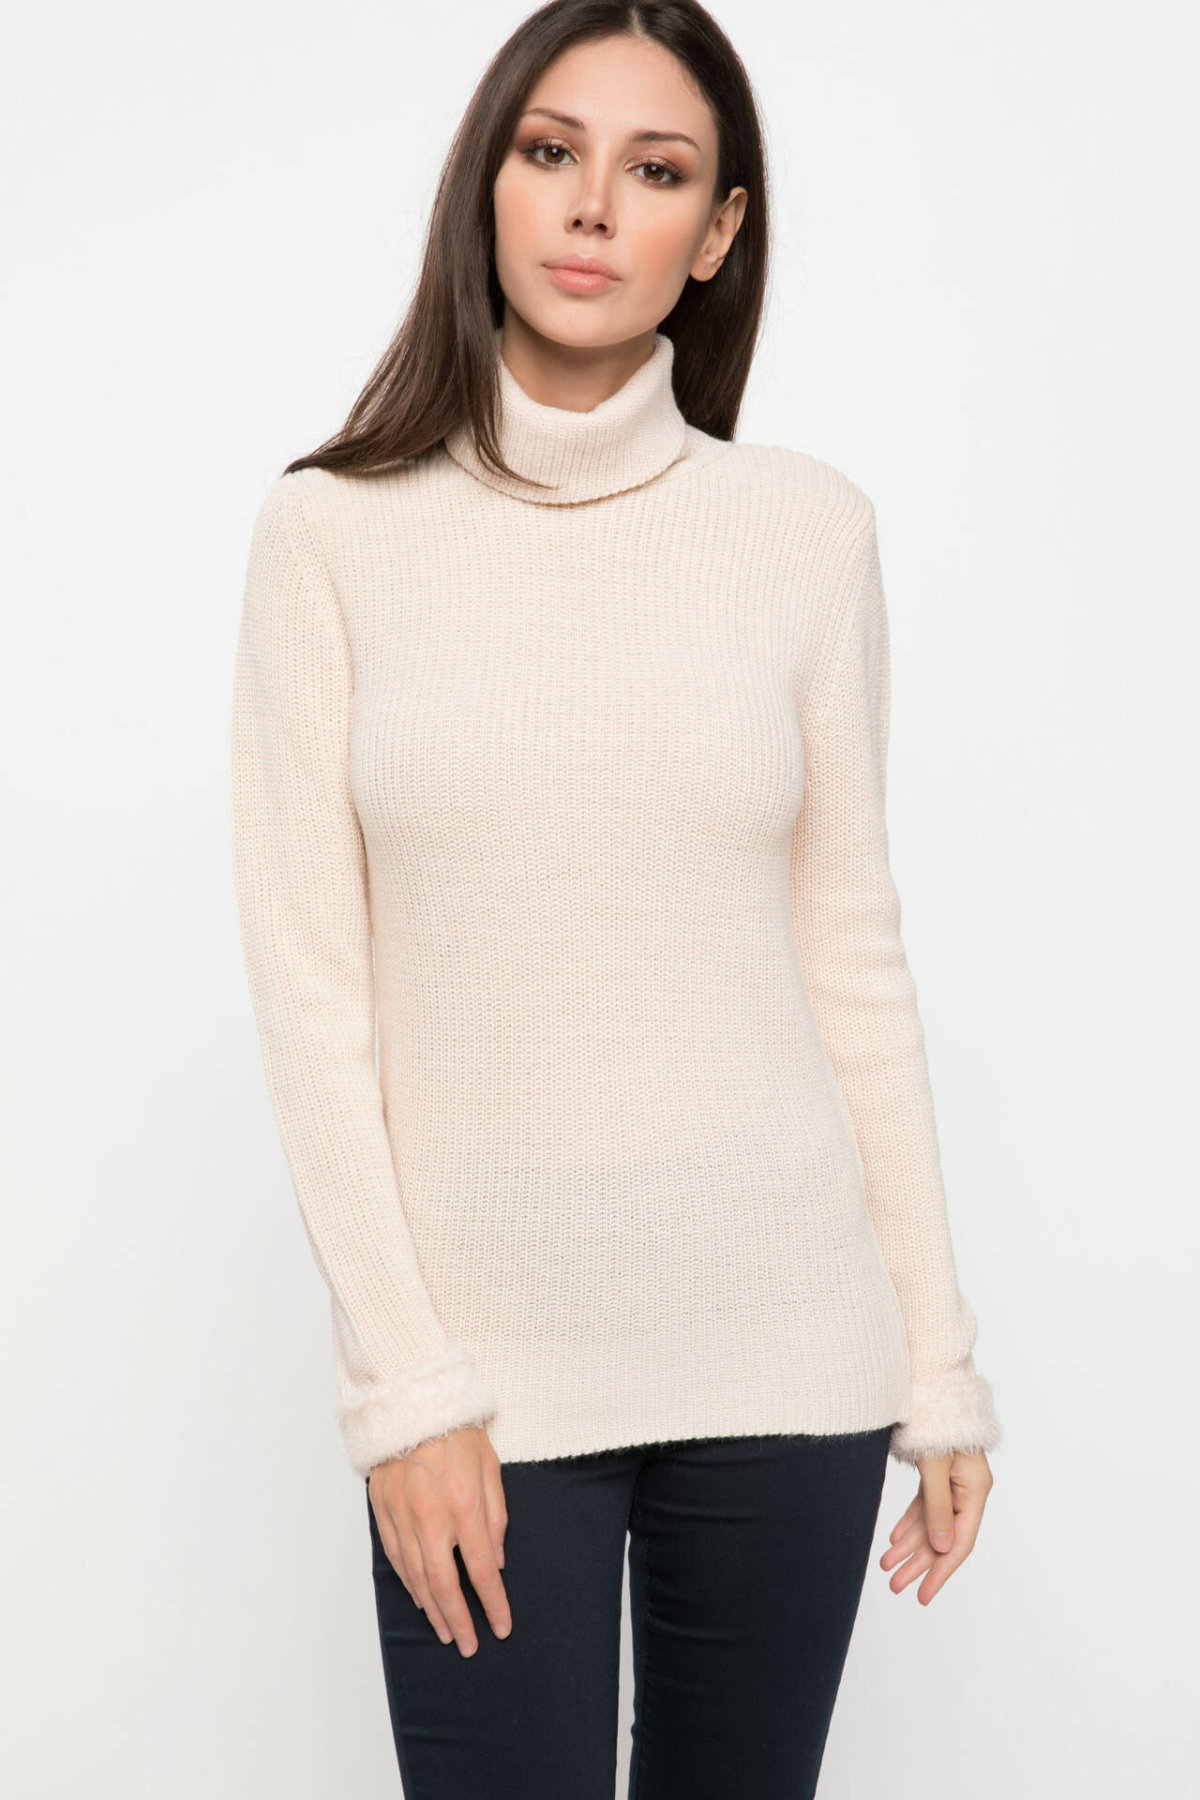 DeFacto Autumn Pure Color Double Layer Knitted Shirt Warm Long Sleeve White Grey Pullover Sweatshirts-J0535AZ18WN